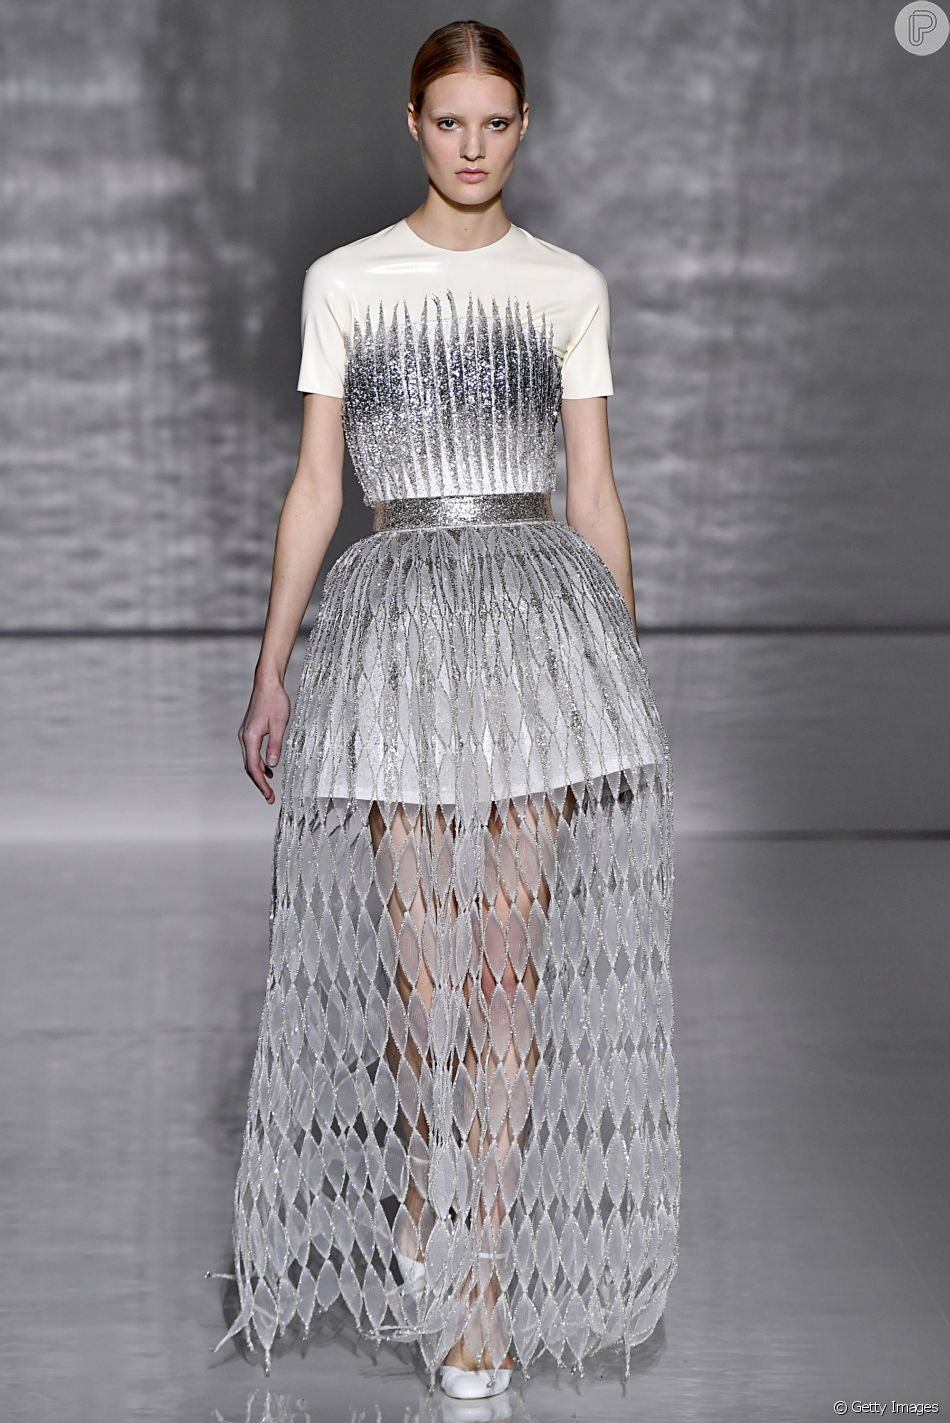 cce613d6f Givenchy Haute Couture Spring Summer 2019 na Paris Fashion Week  brilho  metálico